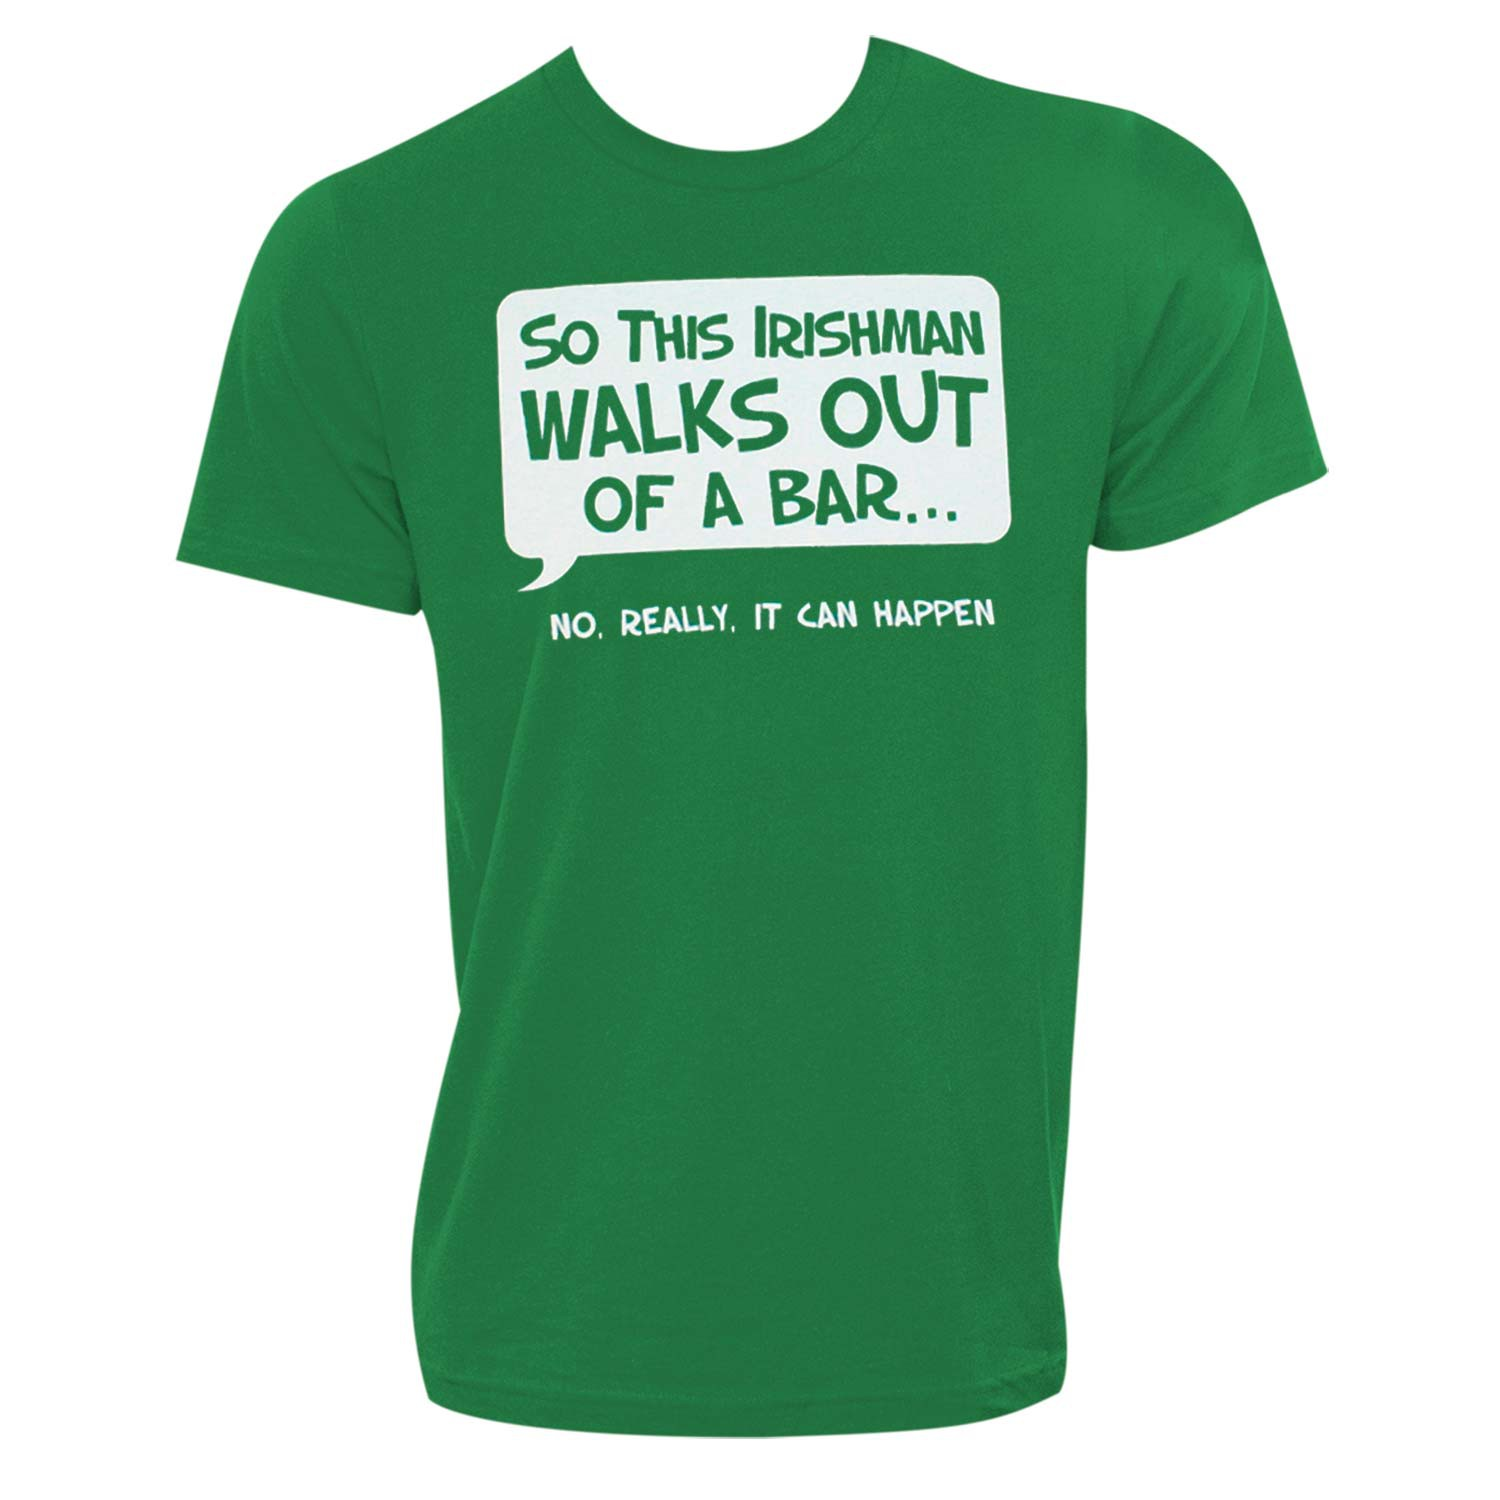 Irishman Walks Out Of A Bar Green Graphic T-Shirt